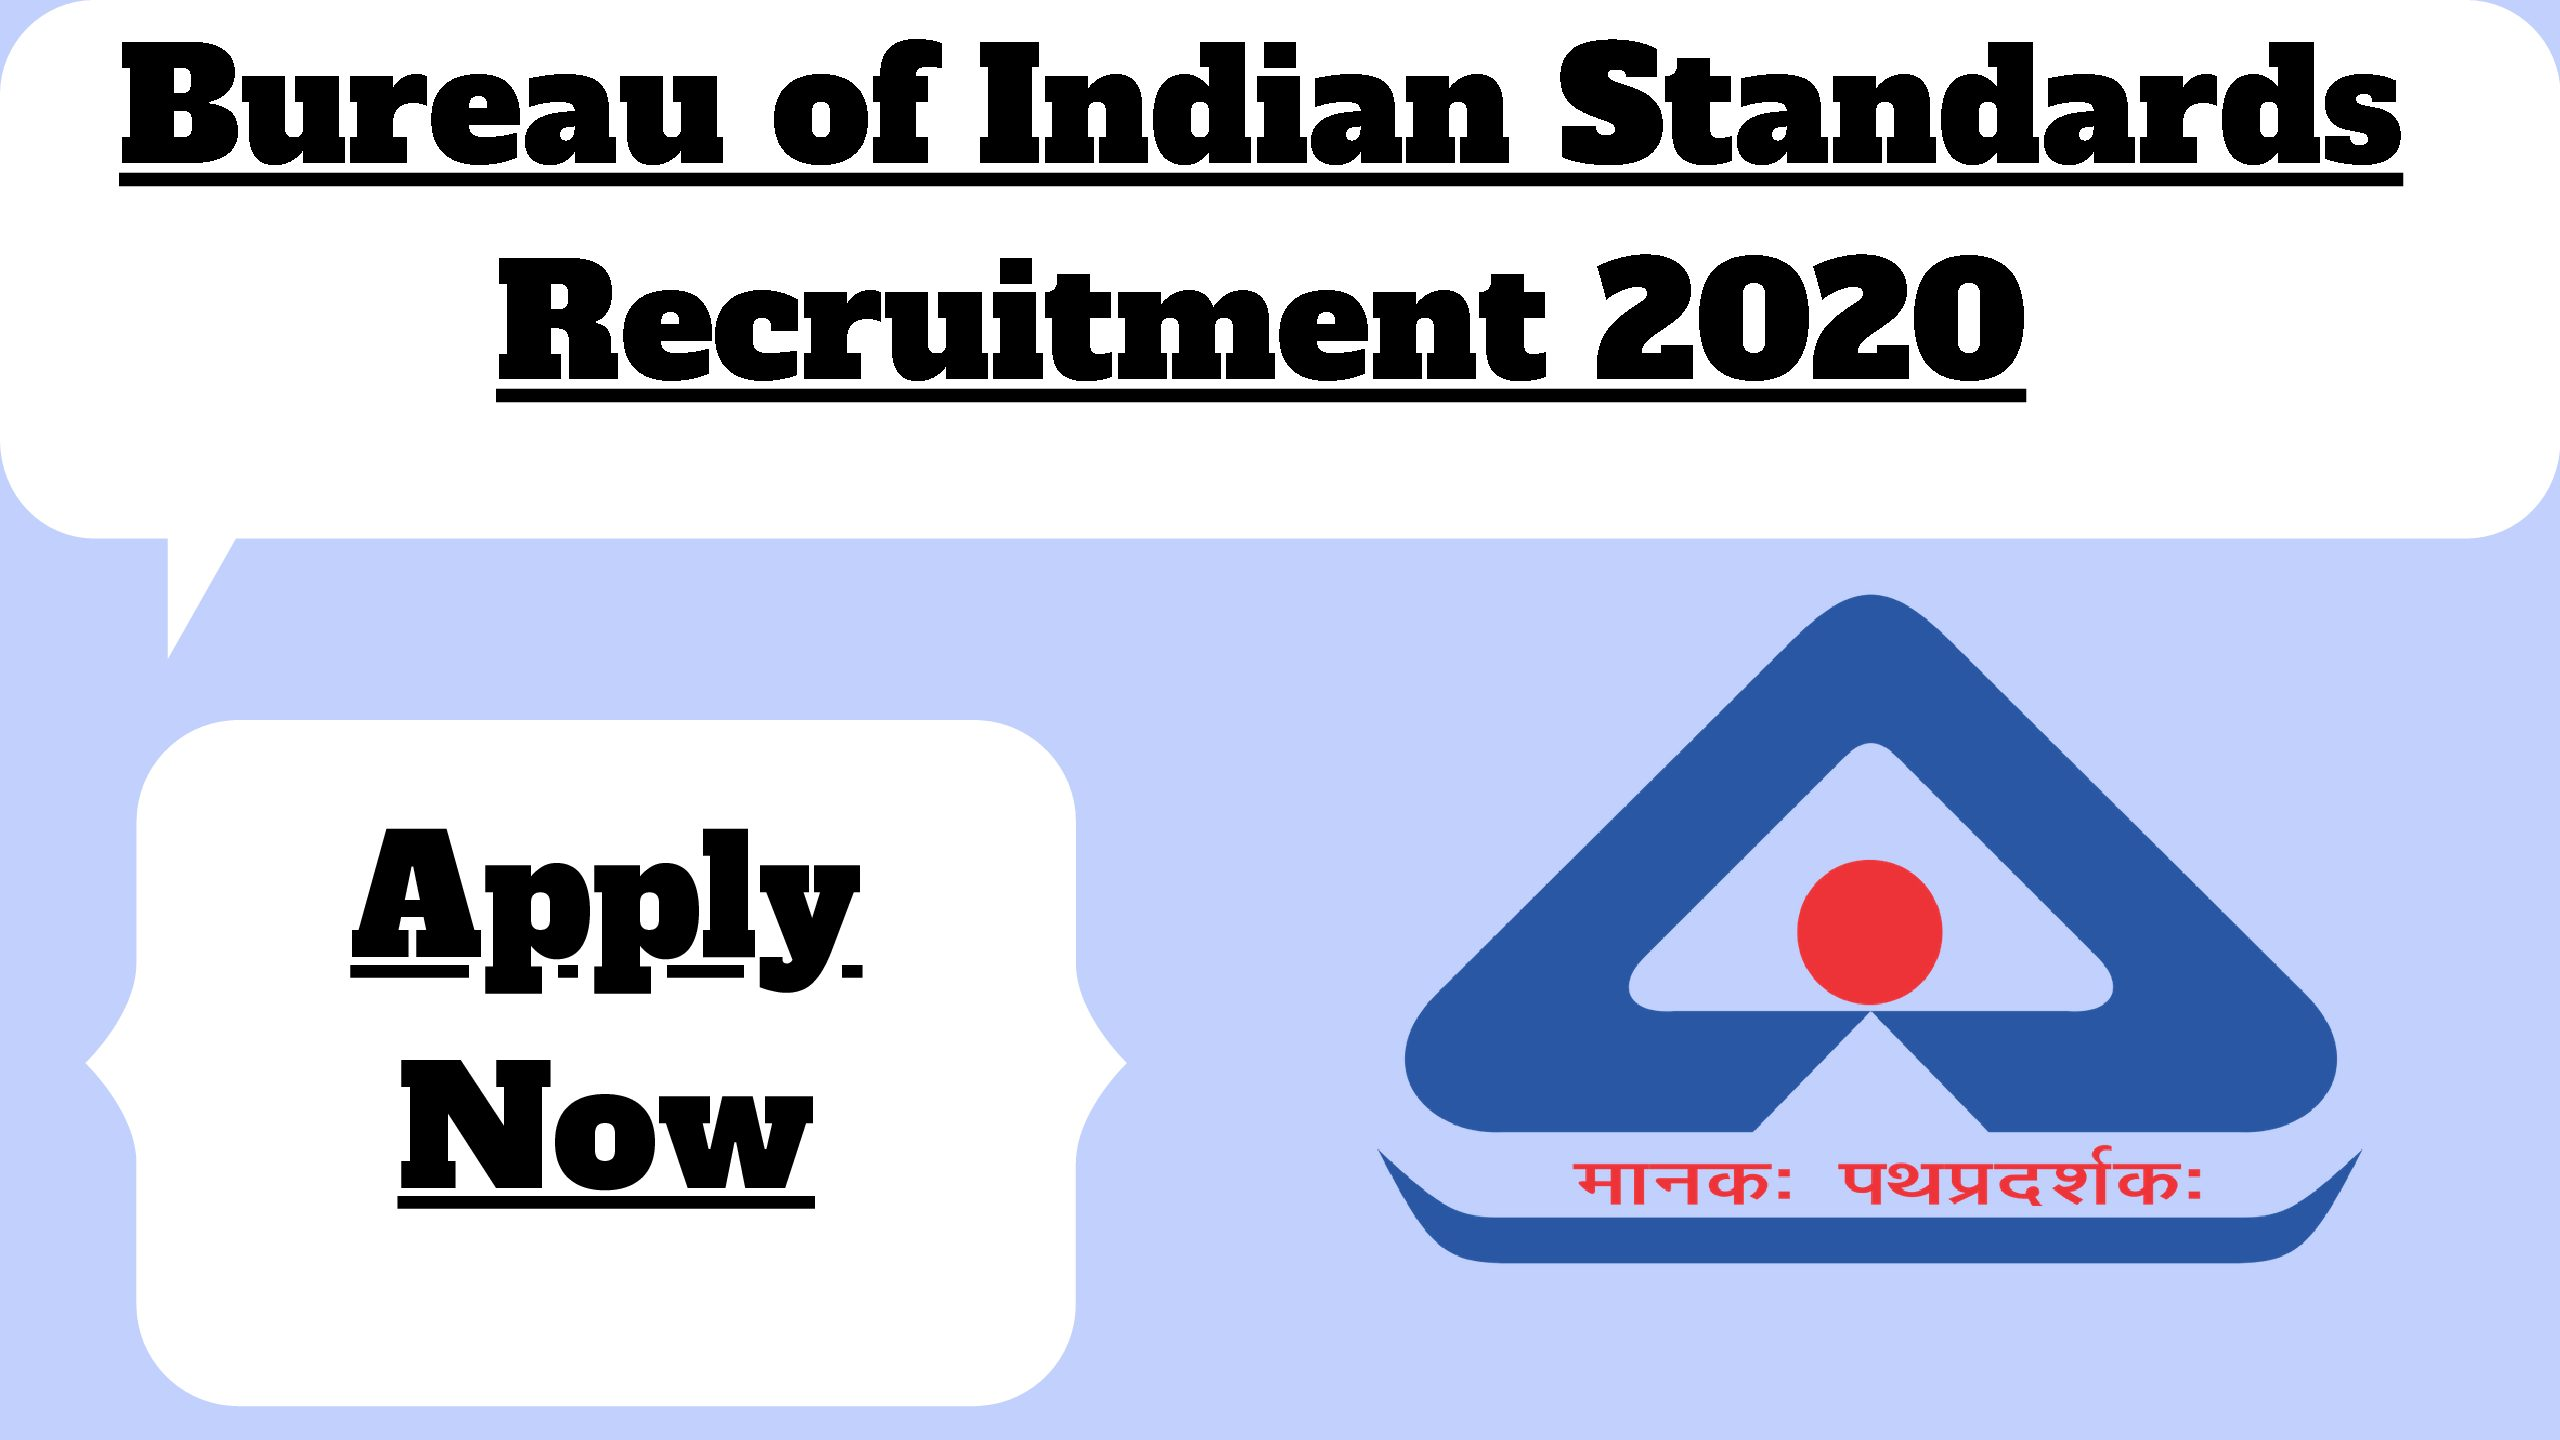 Bureau Of Indian Standards Recruitment 2020 Apply For 150 Of Various Technical Post